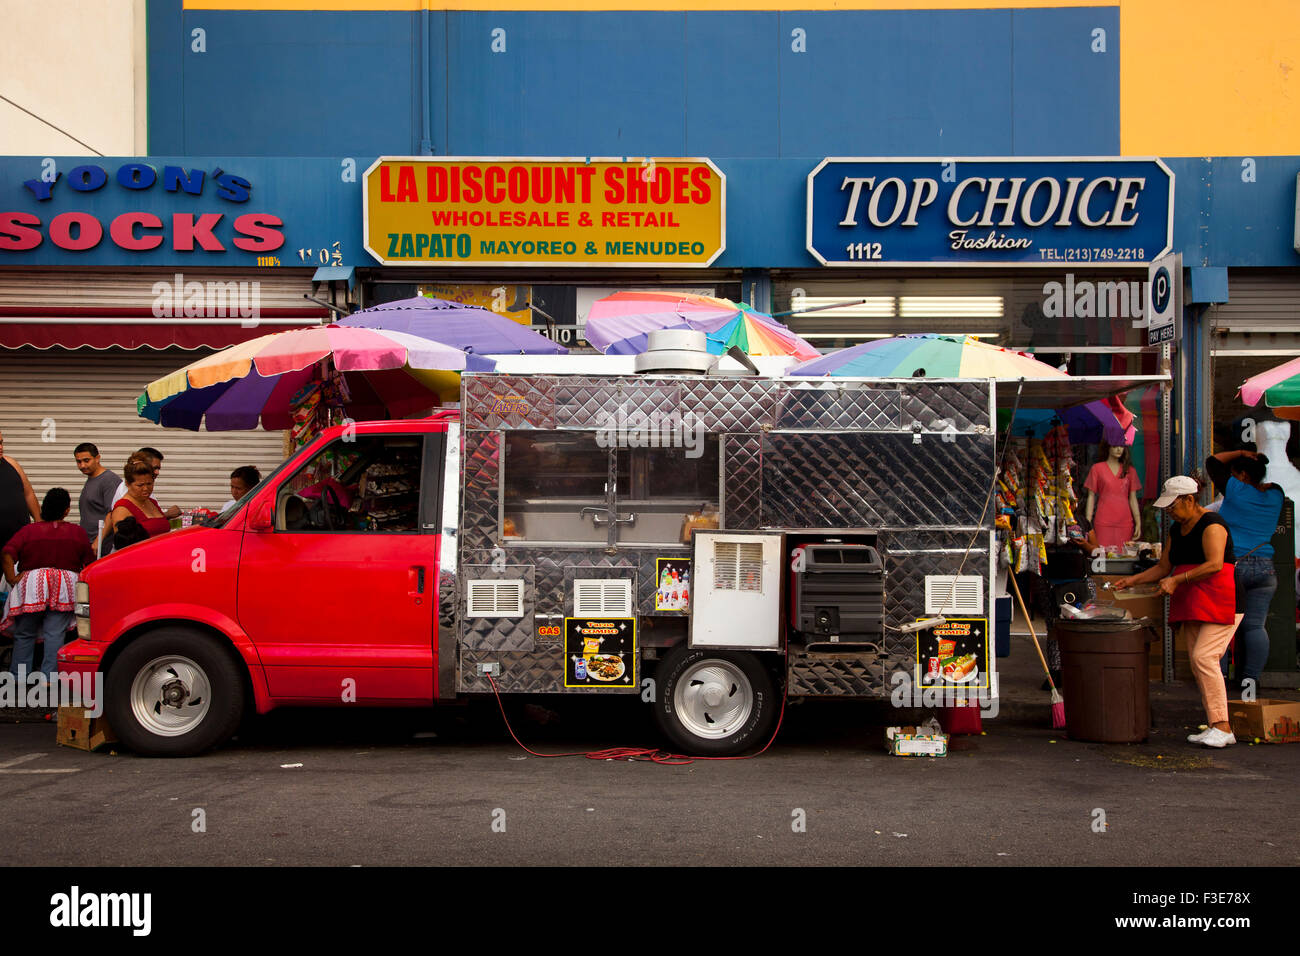 Food Truck Maple Avenue Garment District Downtown Los Angeles California USA